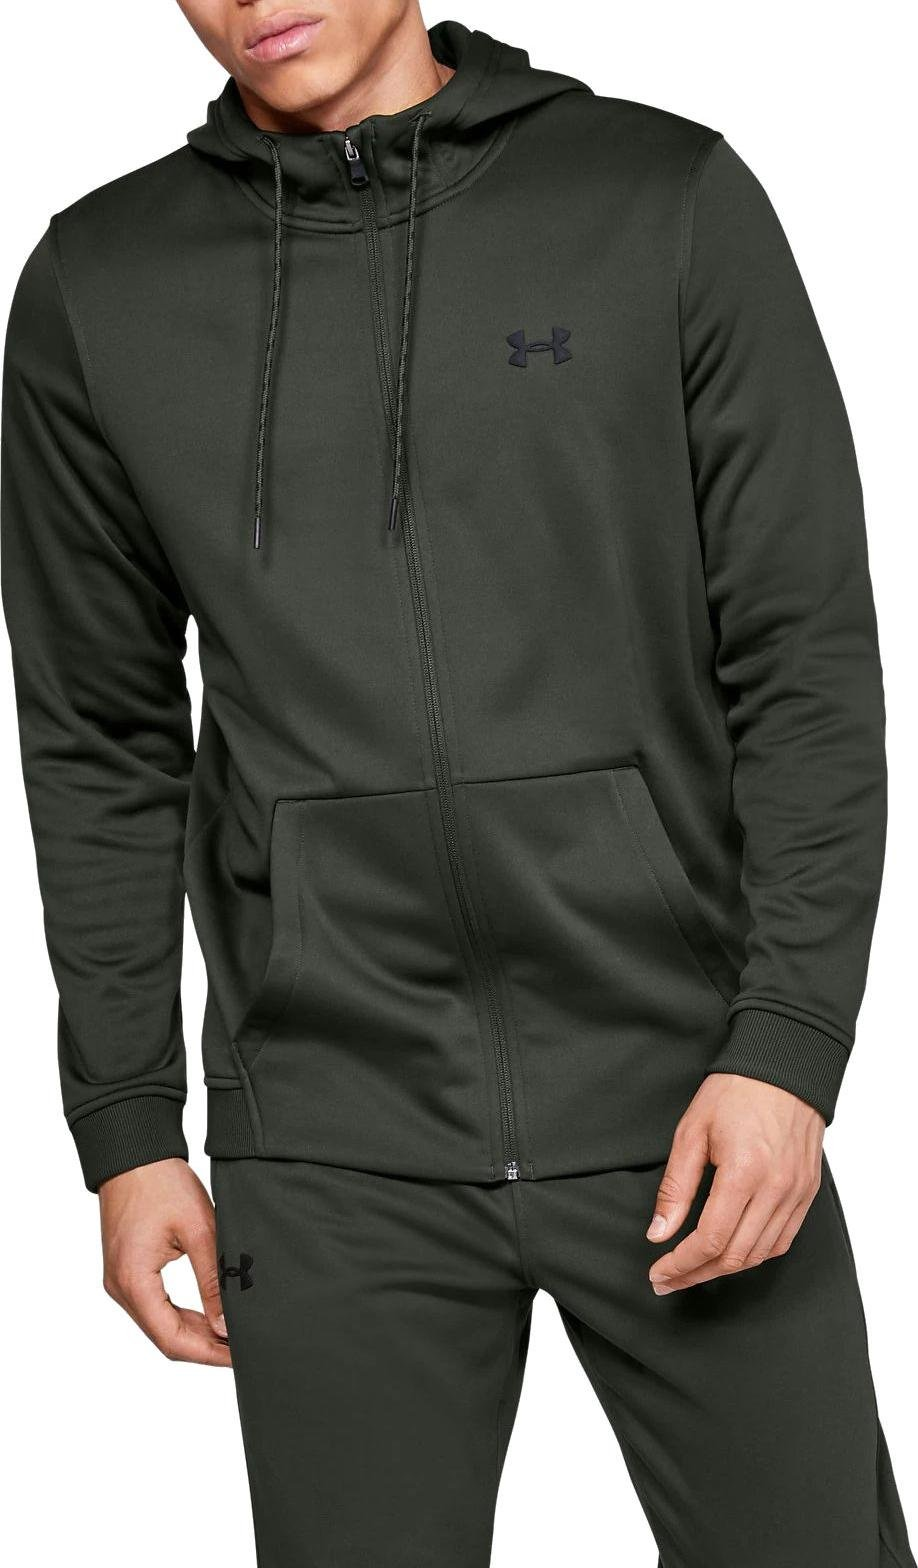 Hooded sweatshirt Under Armour ARMOUR FLEECE FZ HOODIE